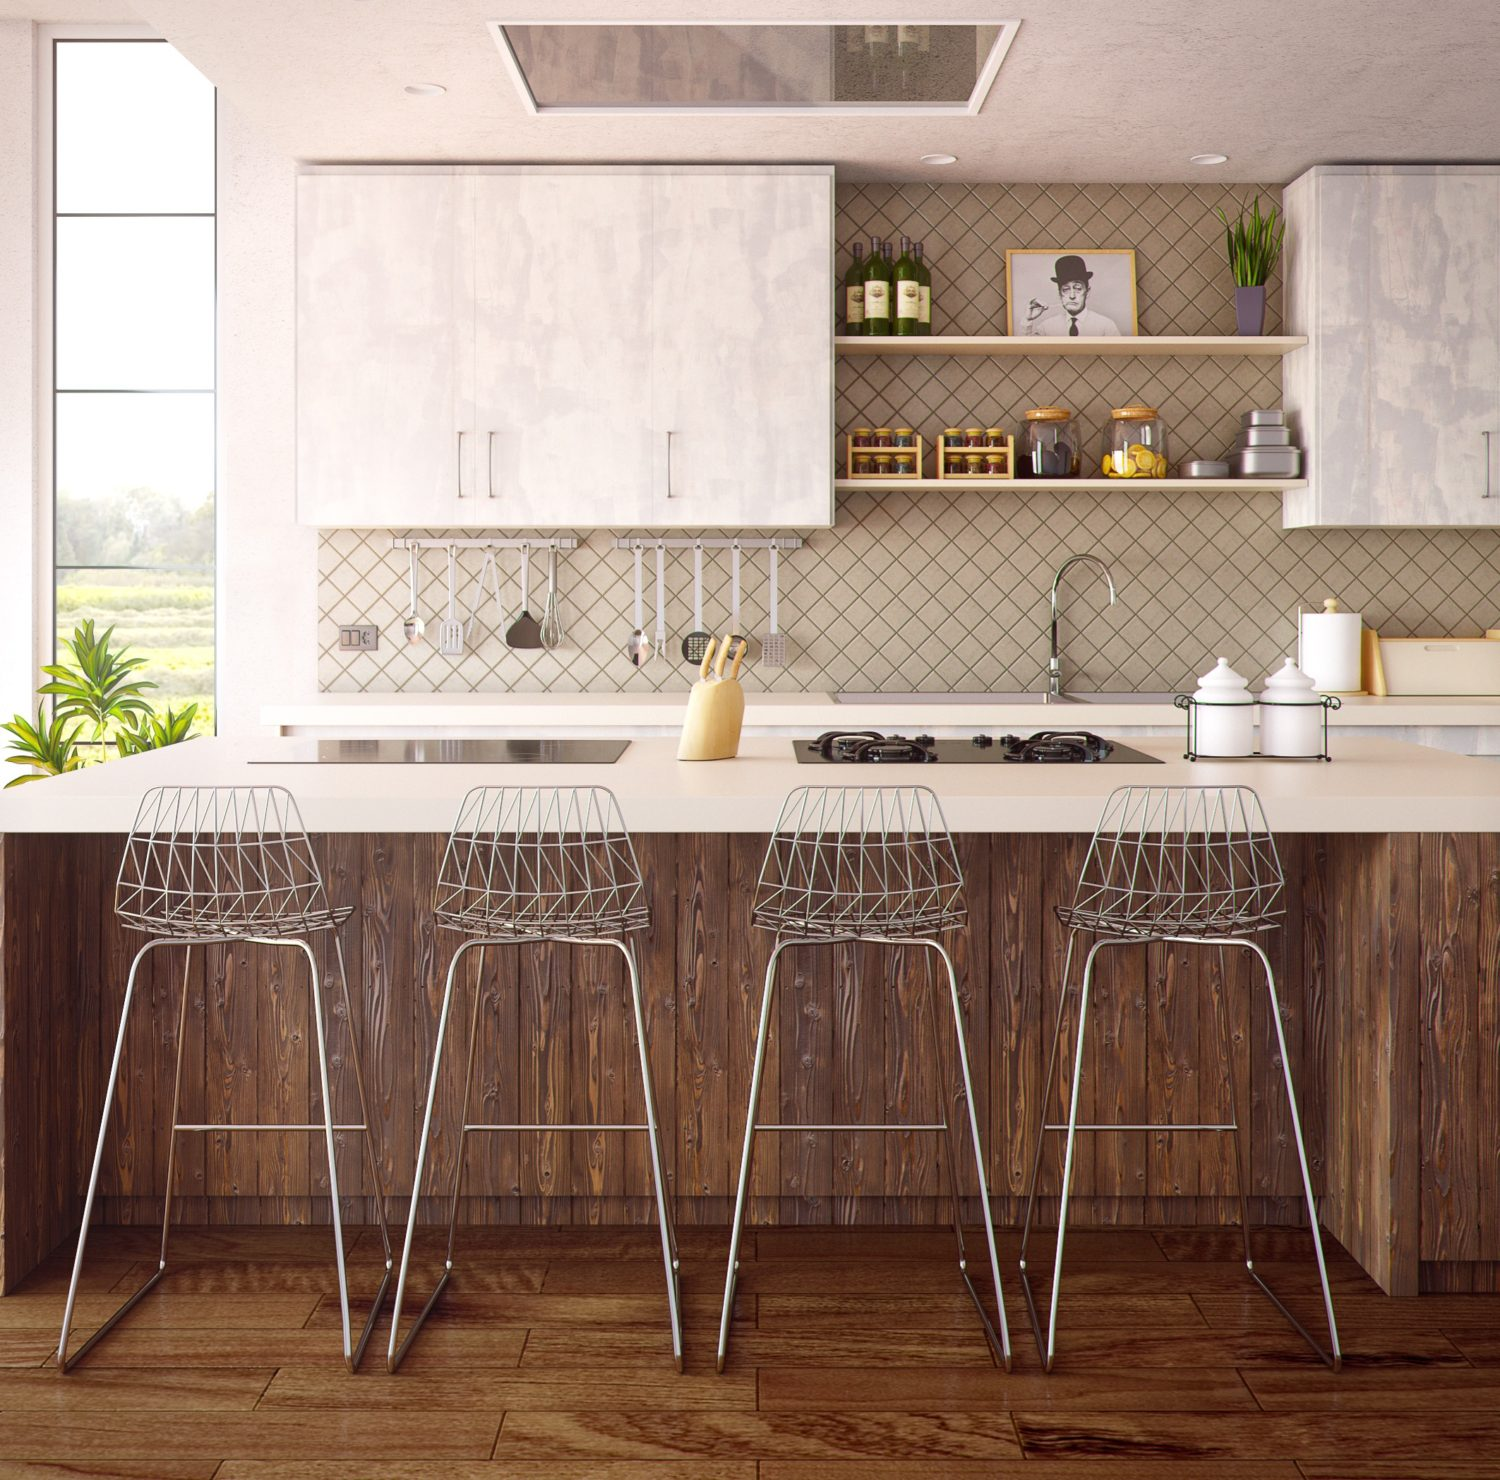 kitchen stools microfibres rug finding the perfect